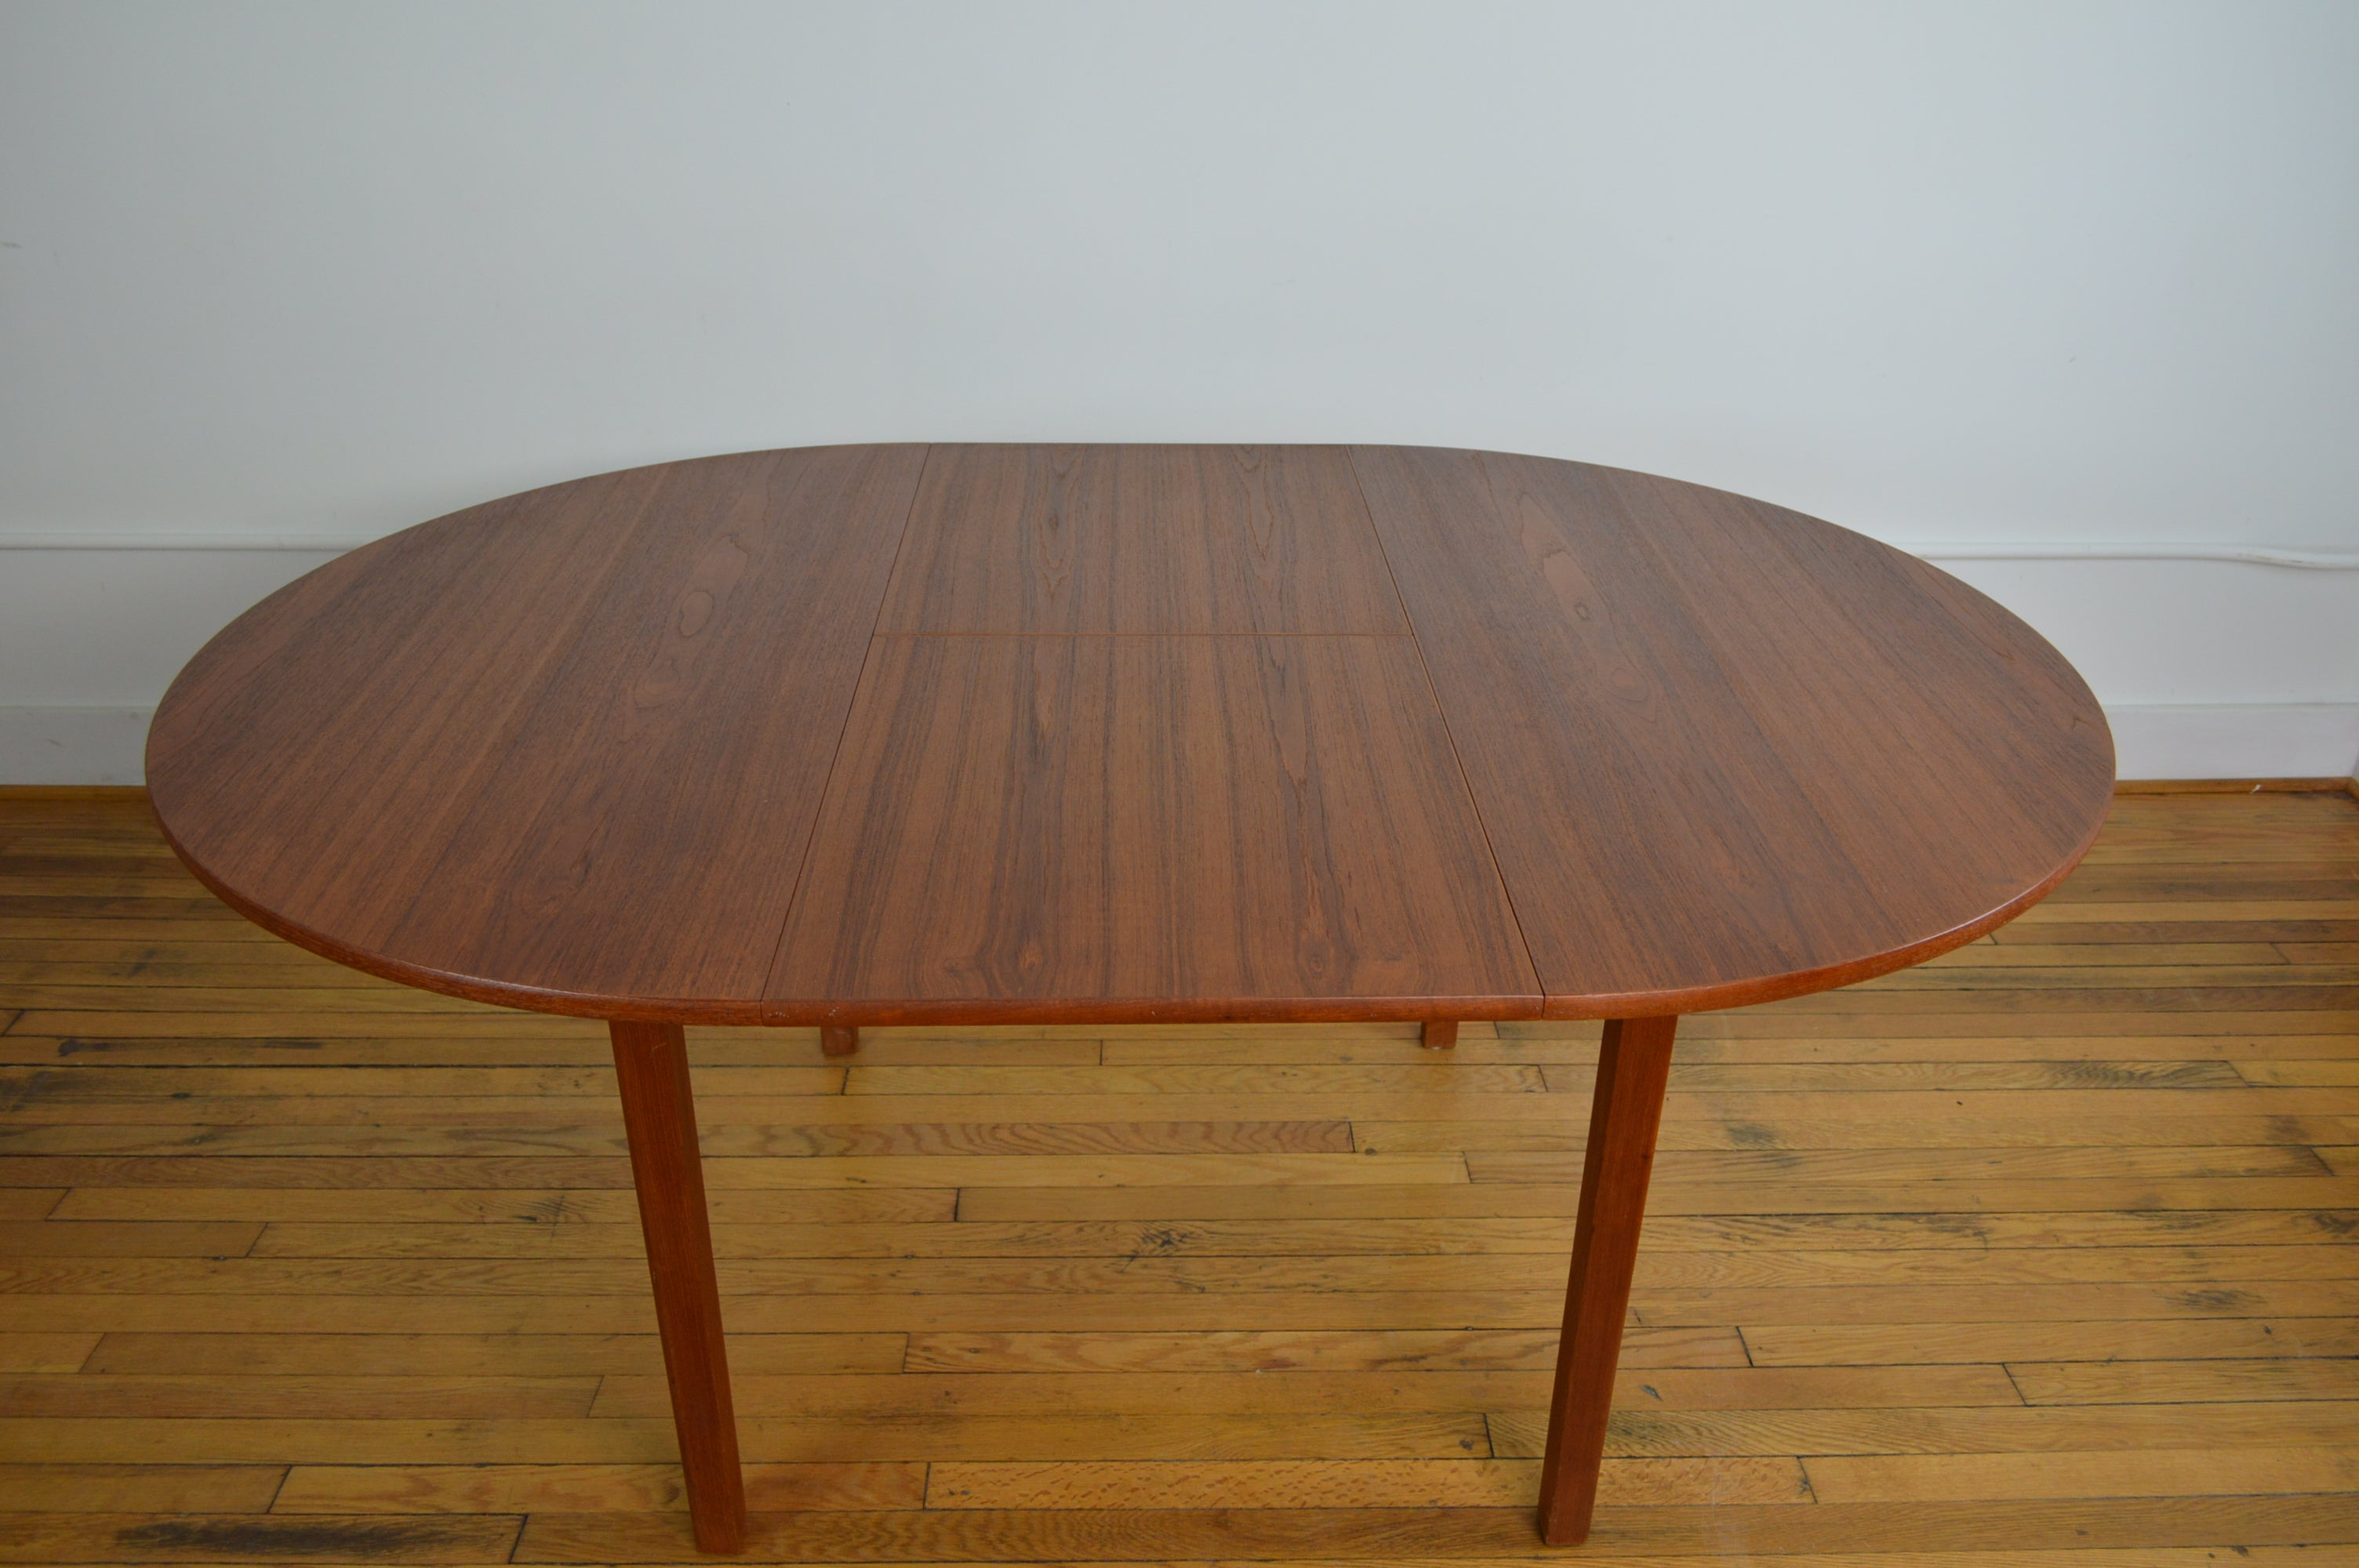 Danish Teak Dining Table With Butterfly Extension Leaf GalaxieModern - Teak dining table with leaf